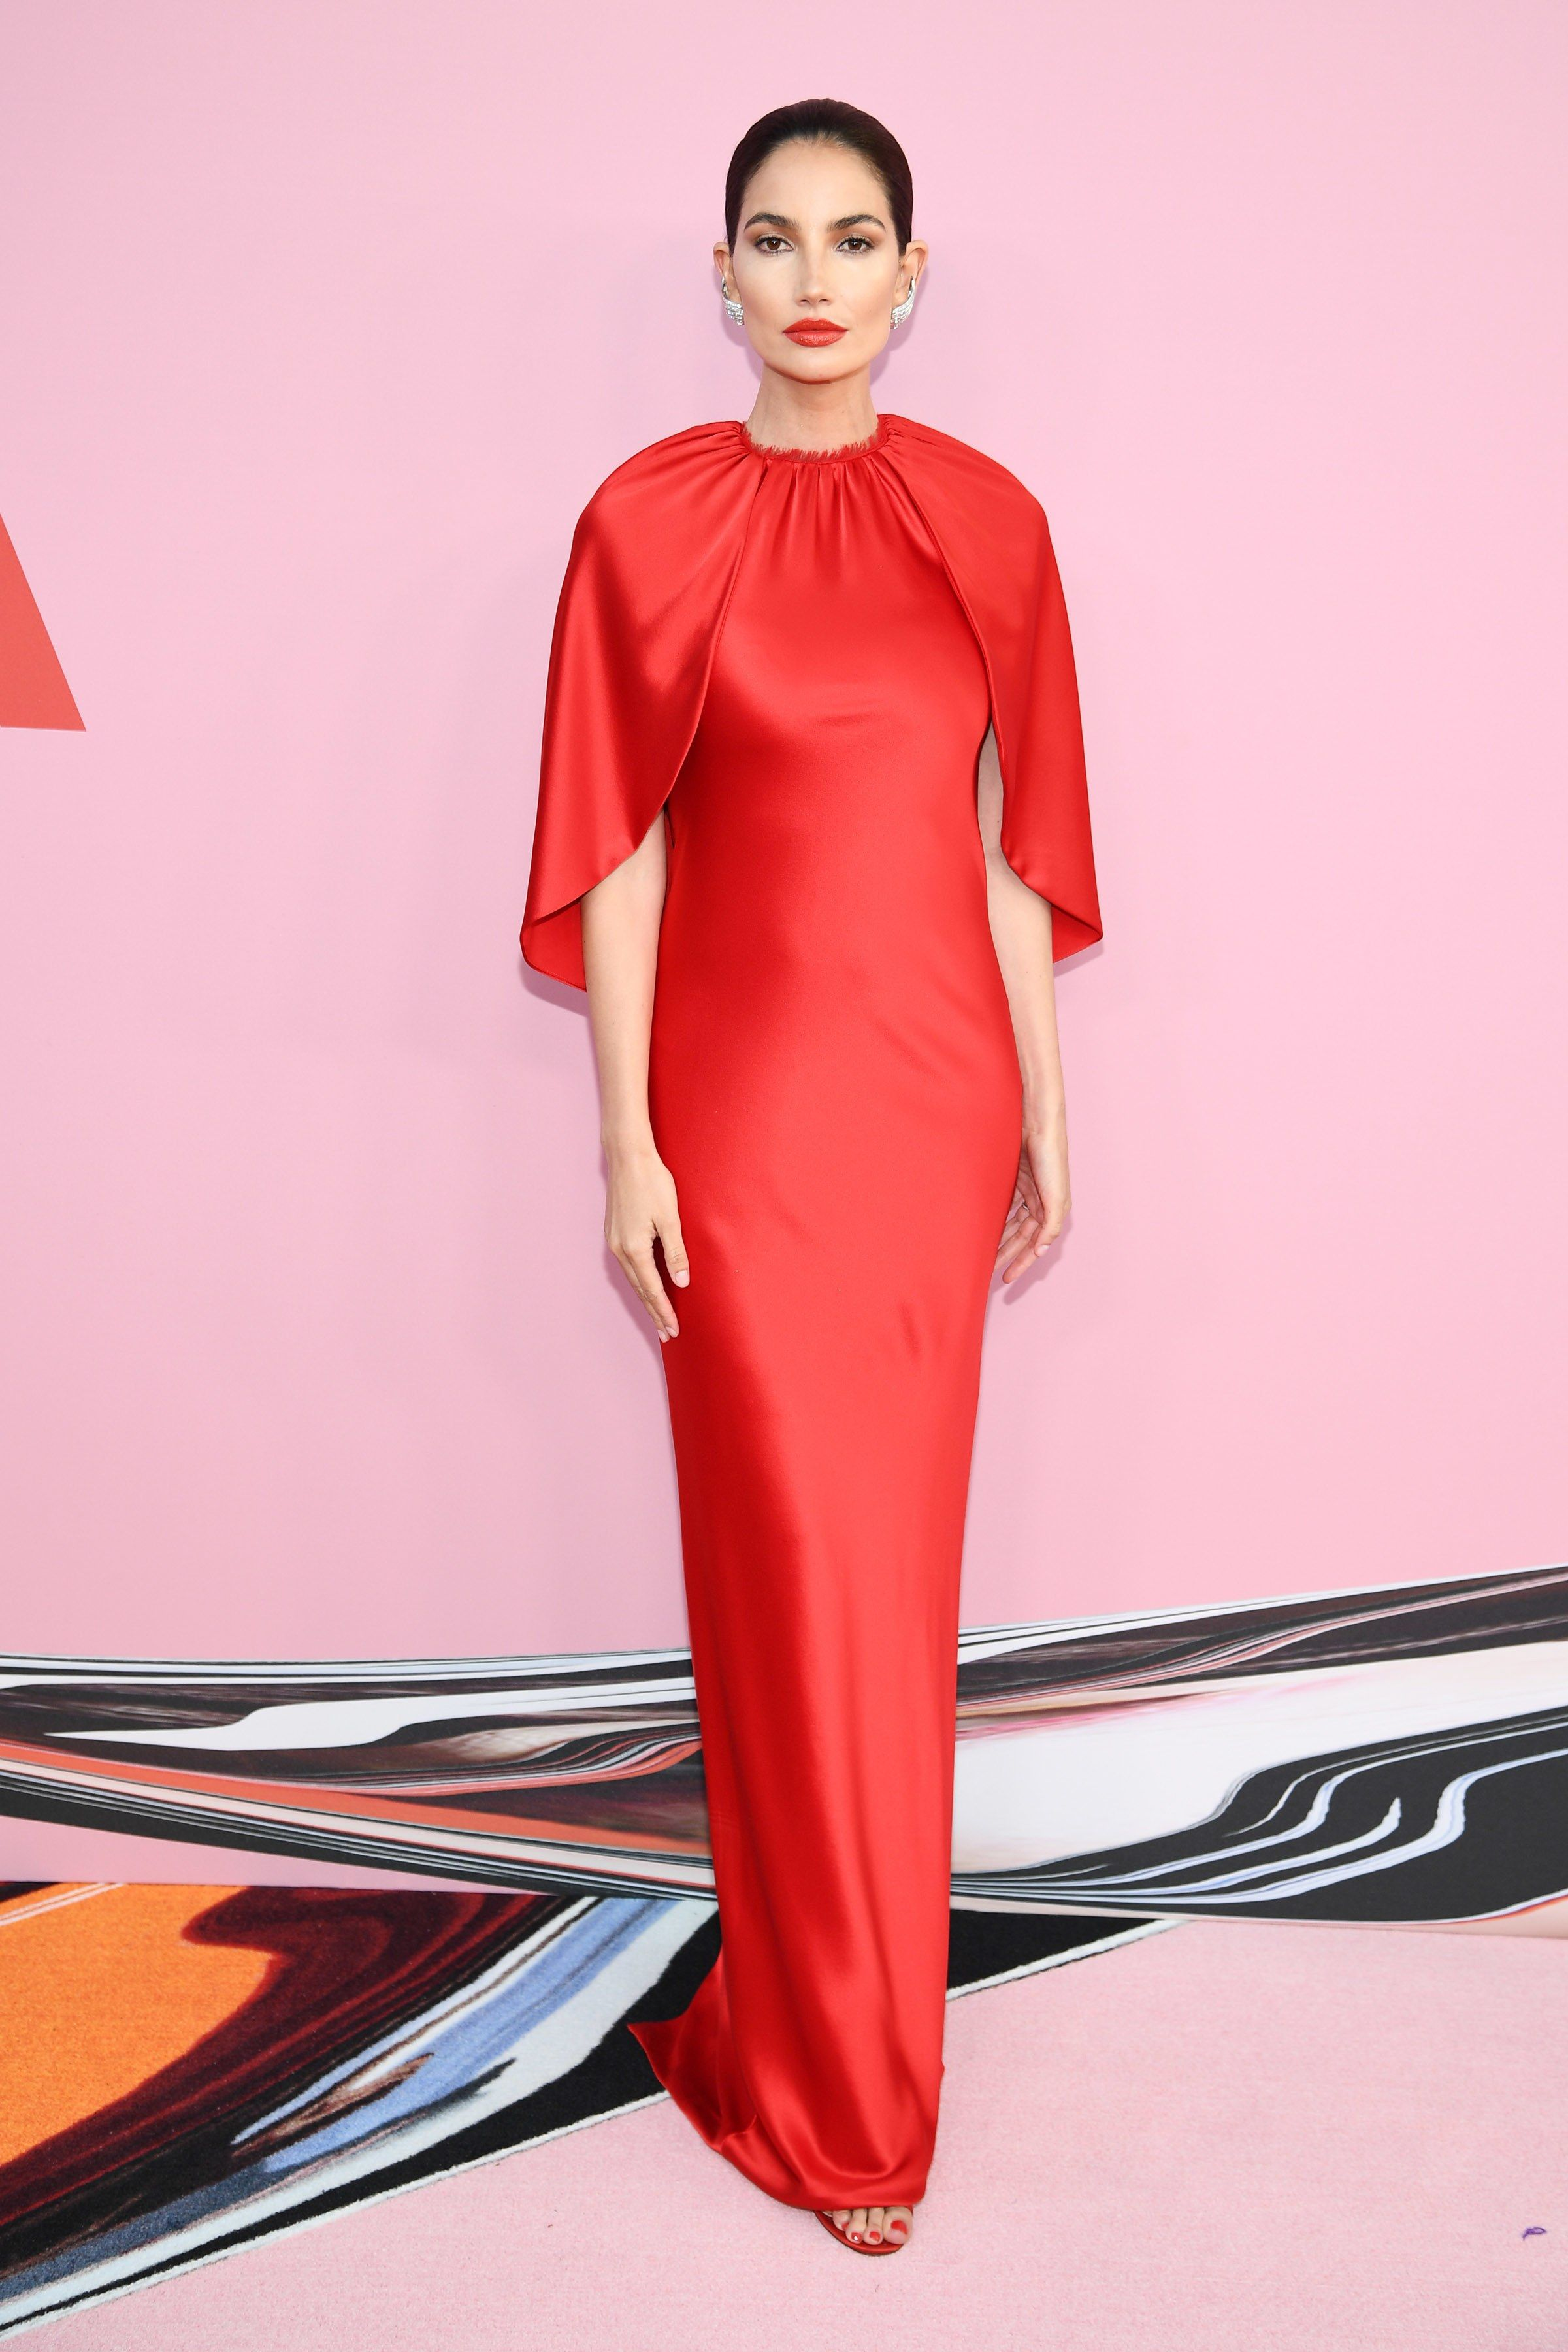 Cfda Awards 2019 Fashion Live From The Red Carpet Fashion Cfda Awards Lily Aldridge